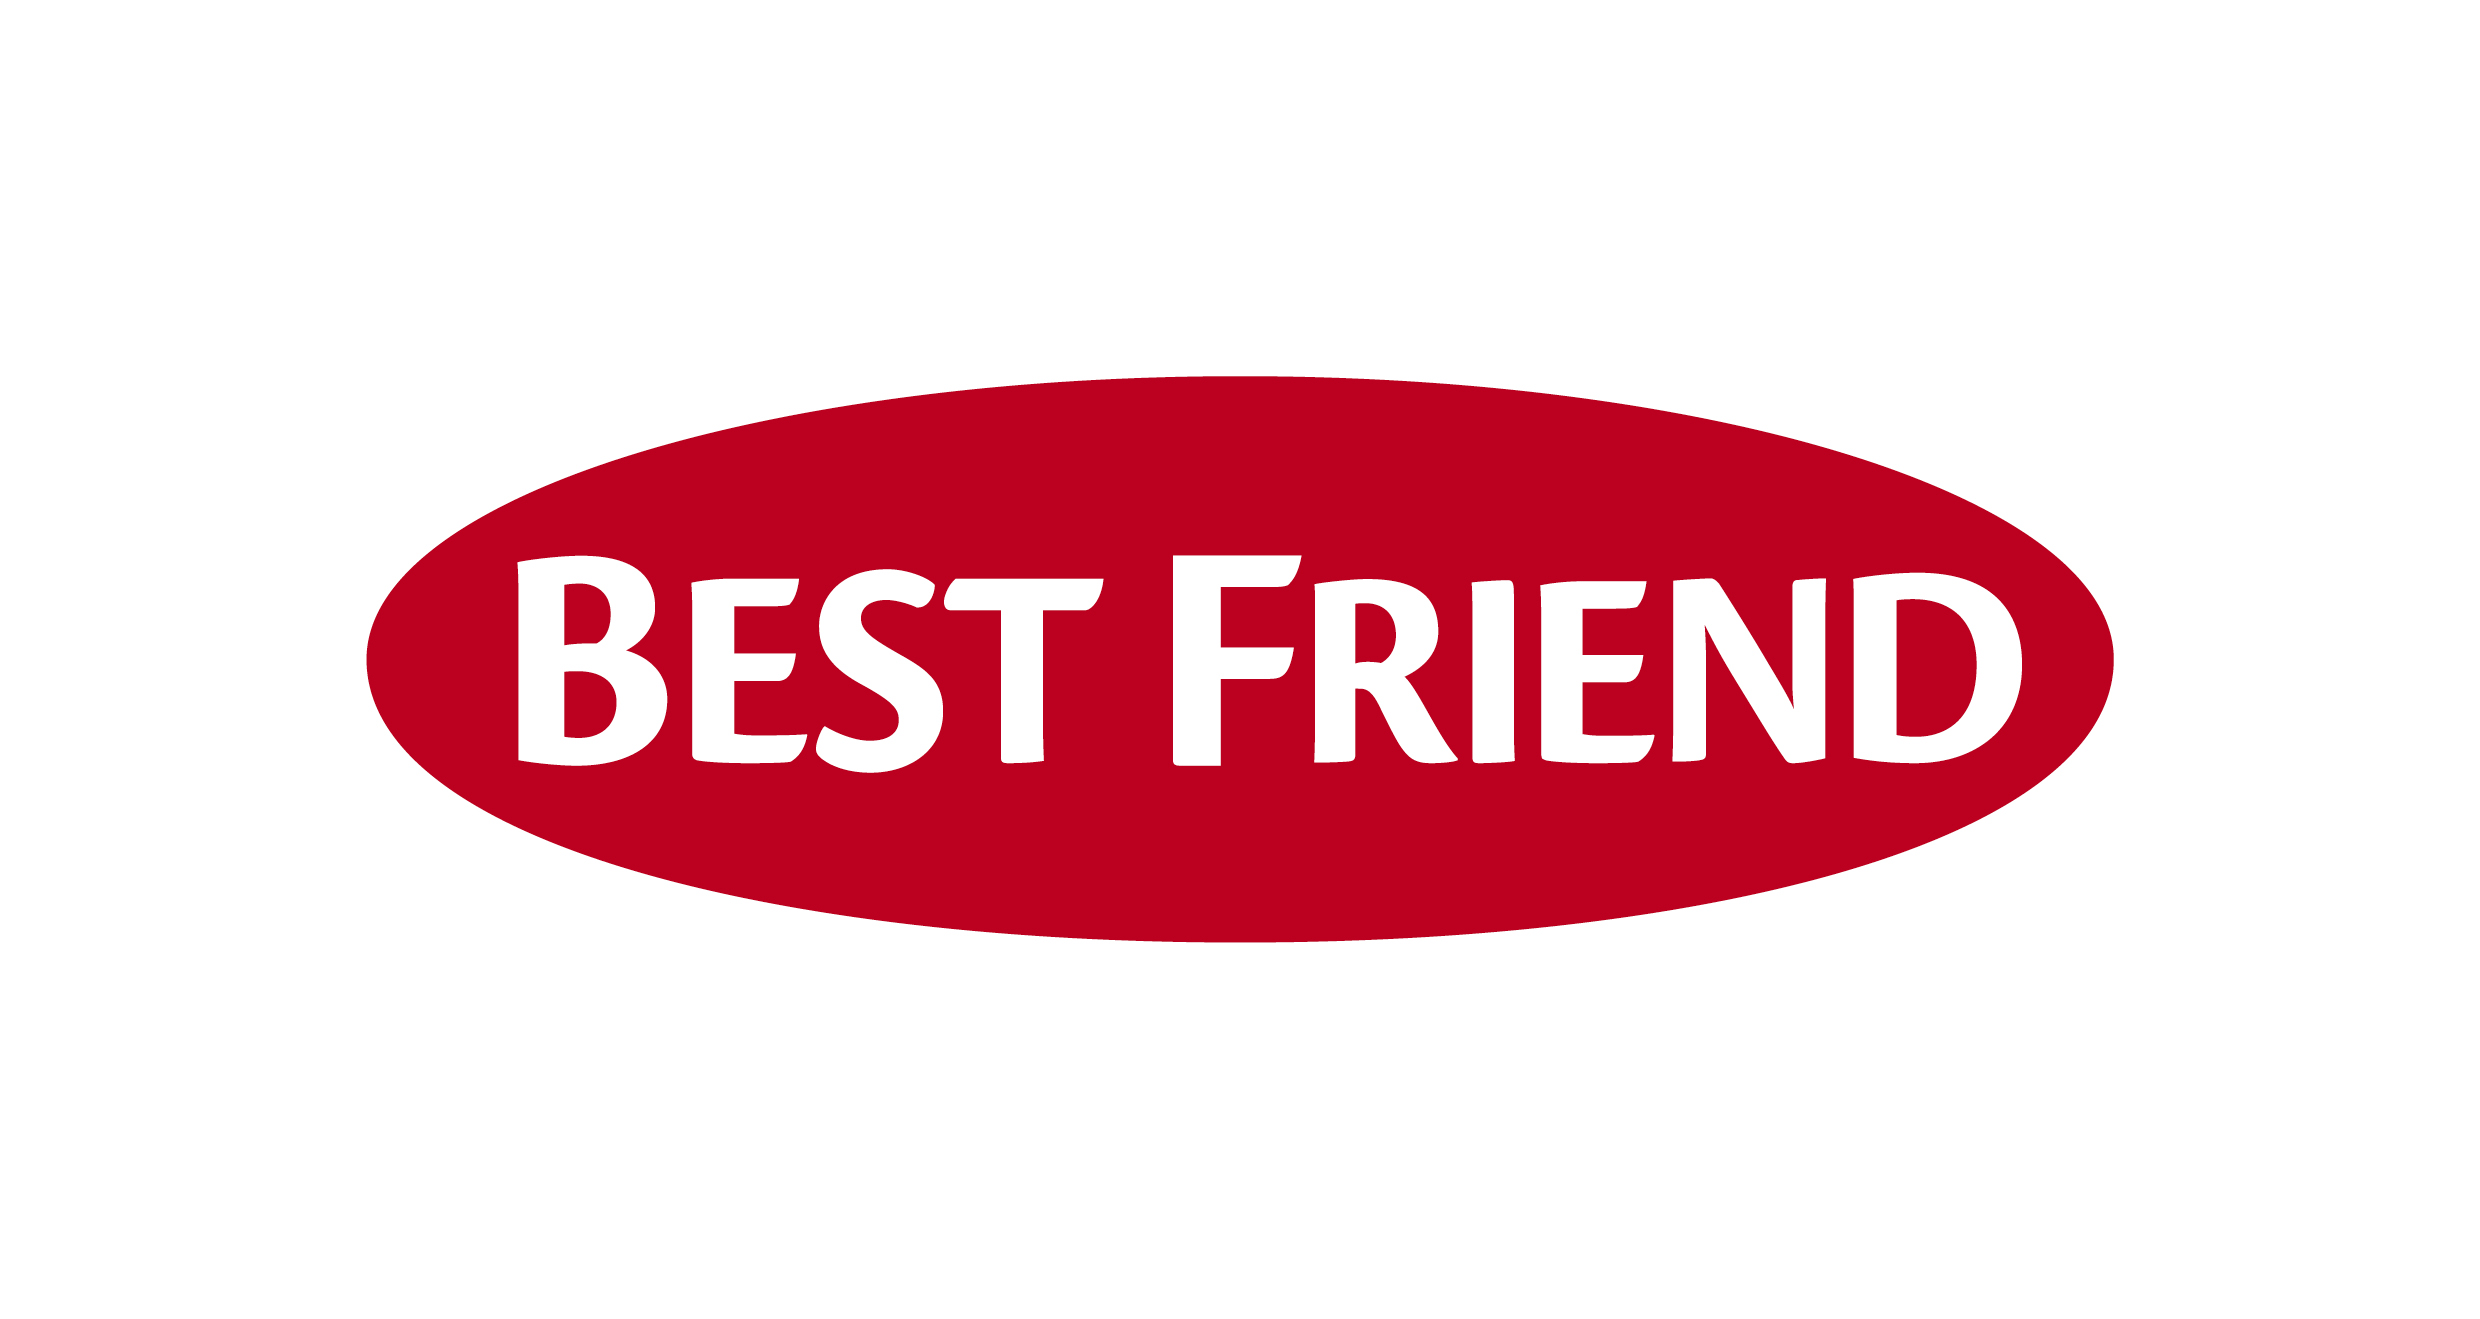 Best Friend 1c red L